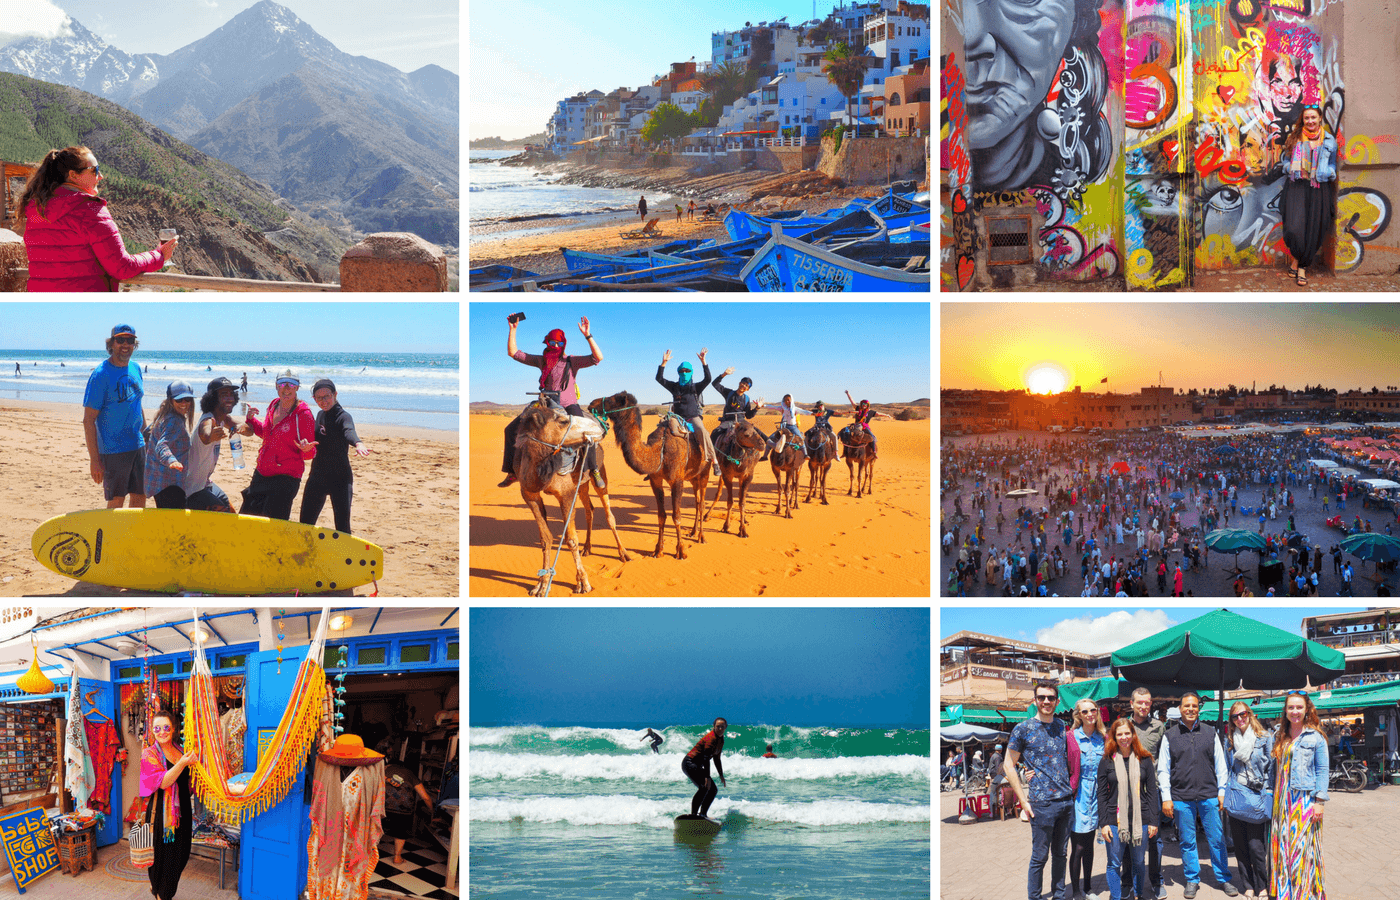 Morocco small group tour for solo travellers.